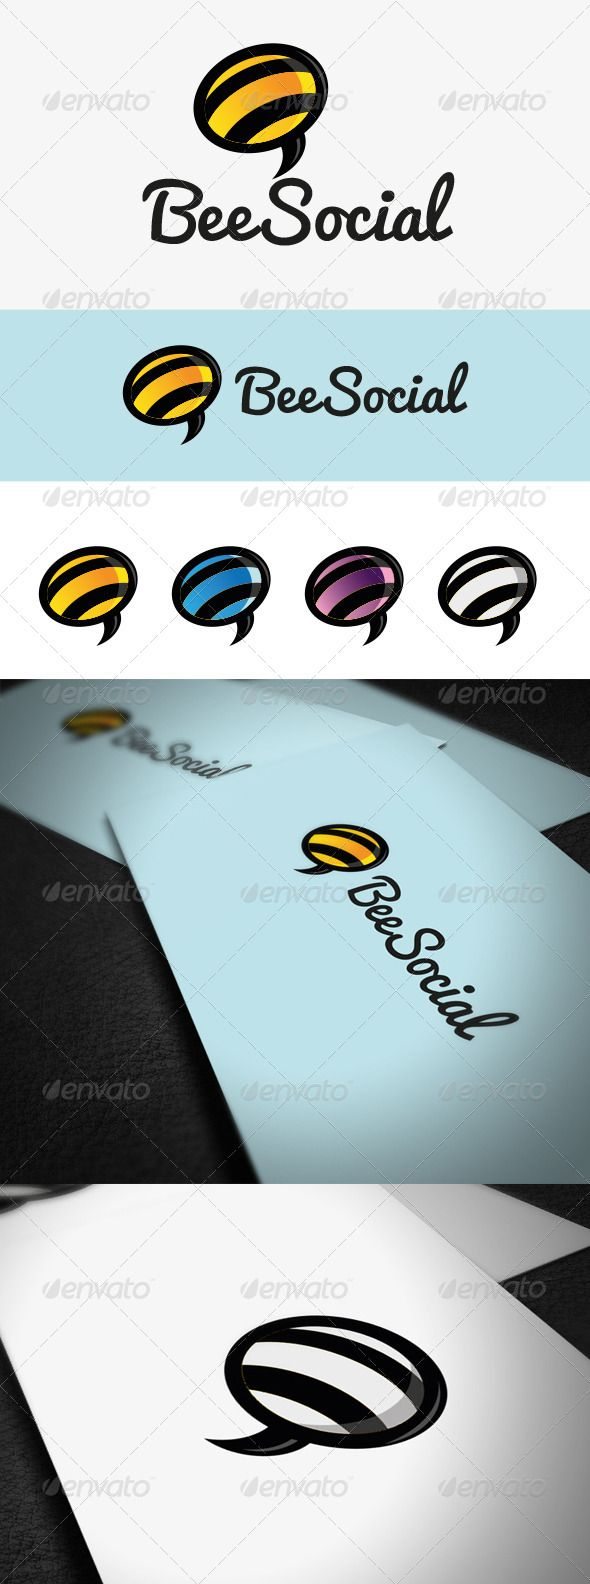 62 best logo templates images on pinterest logo templates font bee social graphicriver colorful logo depicting the king of jesters easy to edit with biocorpaavc Images